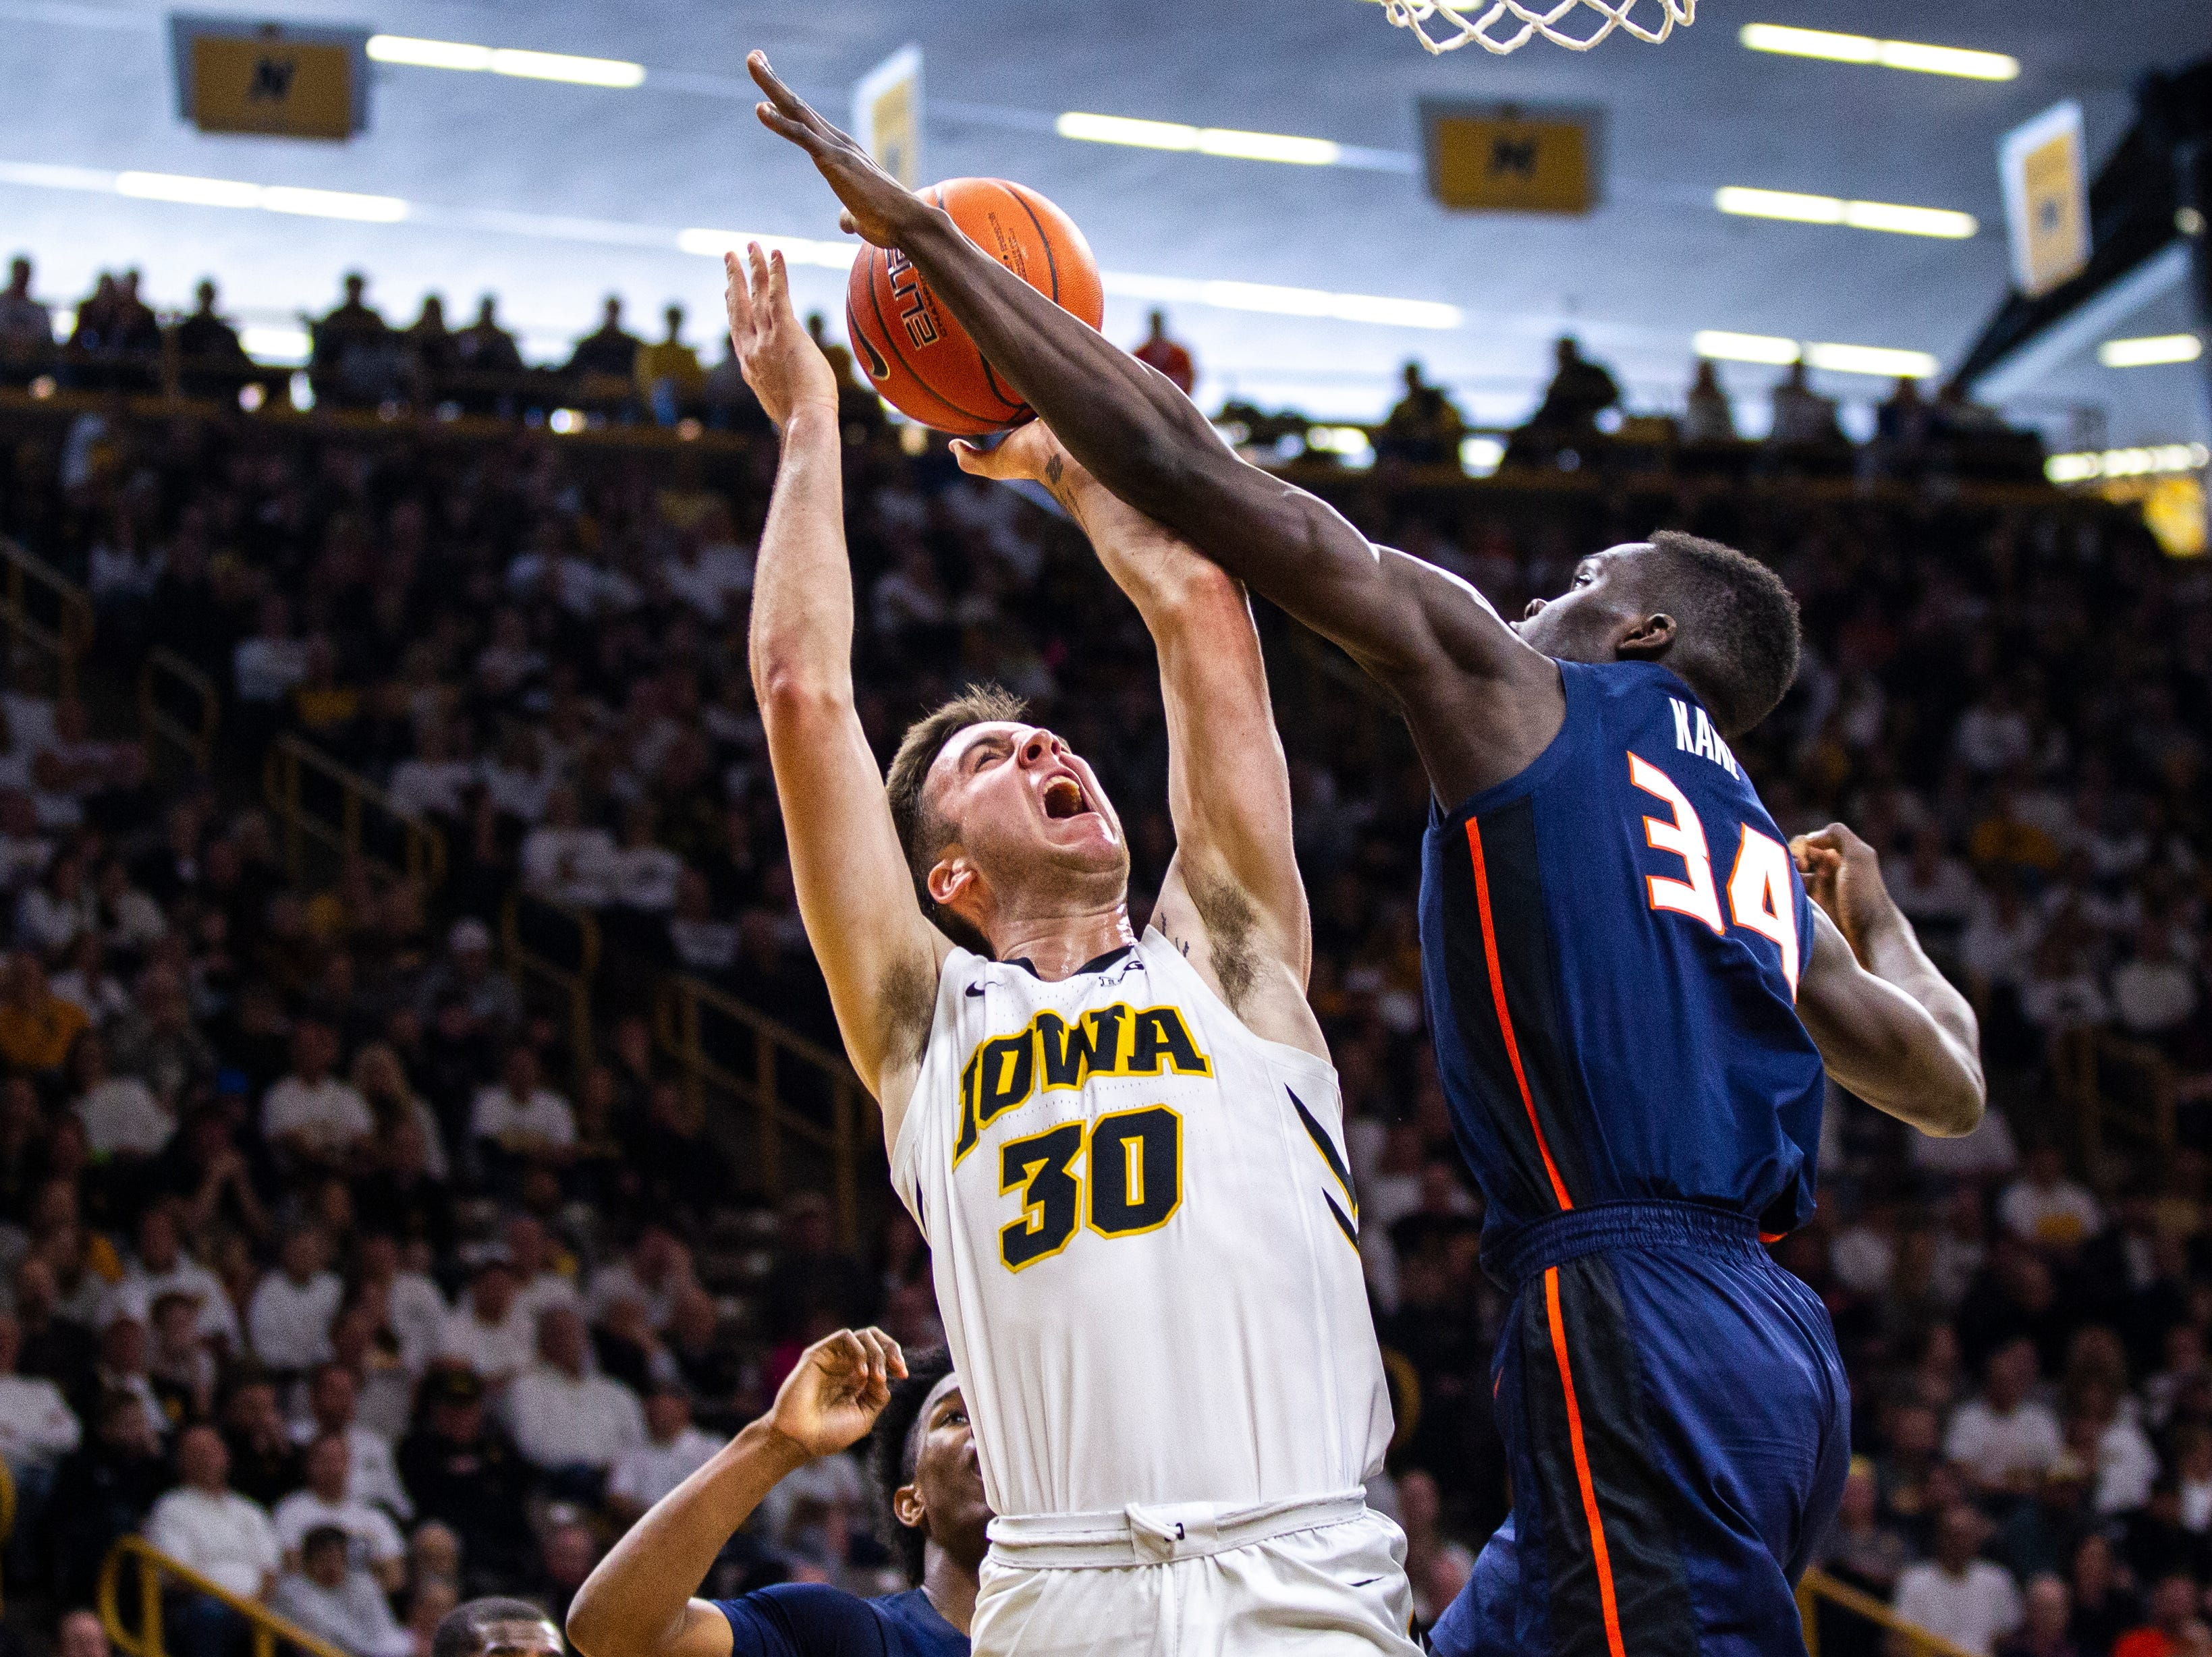 Illinois' Samba Kane (34) blocks Iowa guard Connor McCaffery (30) during a NCAA Big Ten Conference men's basketball game on Sunday, Jan. 20, 2019, at Carver-Hawkeye Arena in Iowa City, Iowa.